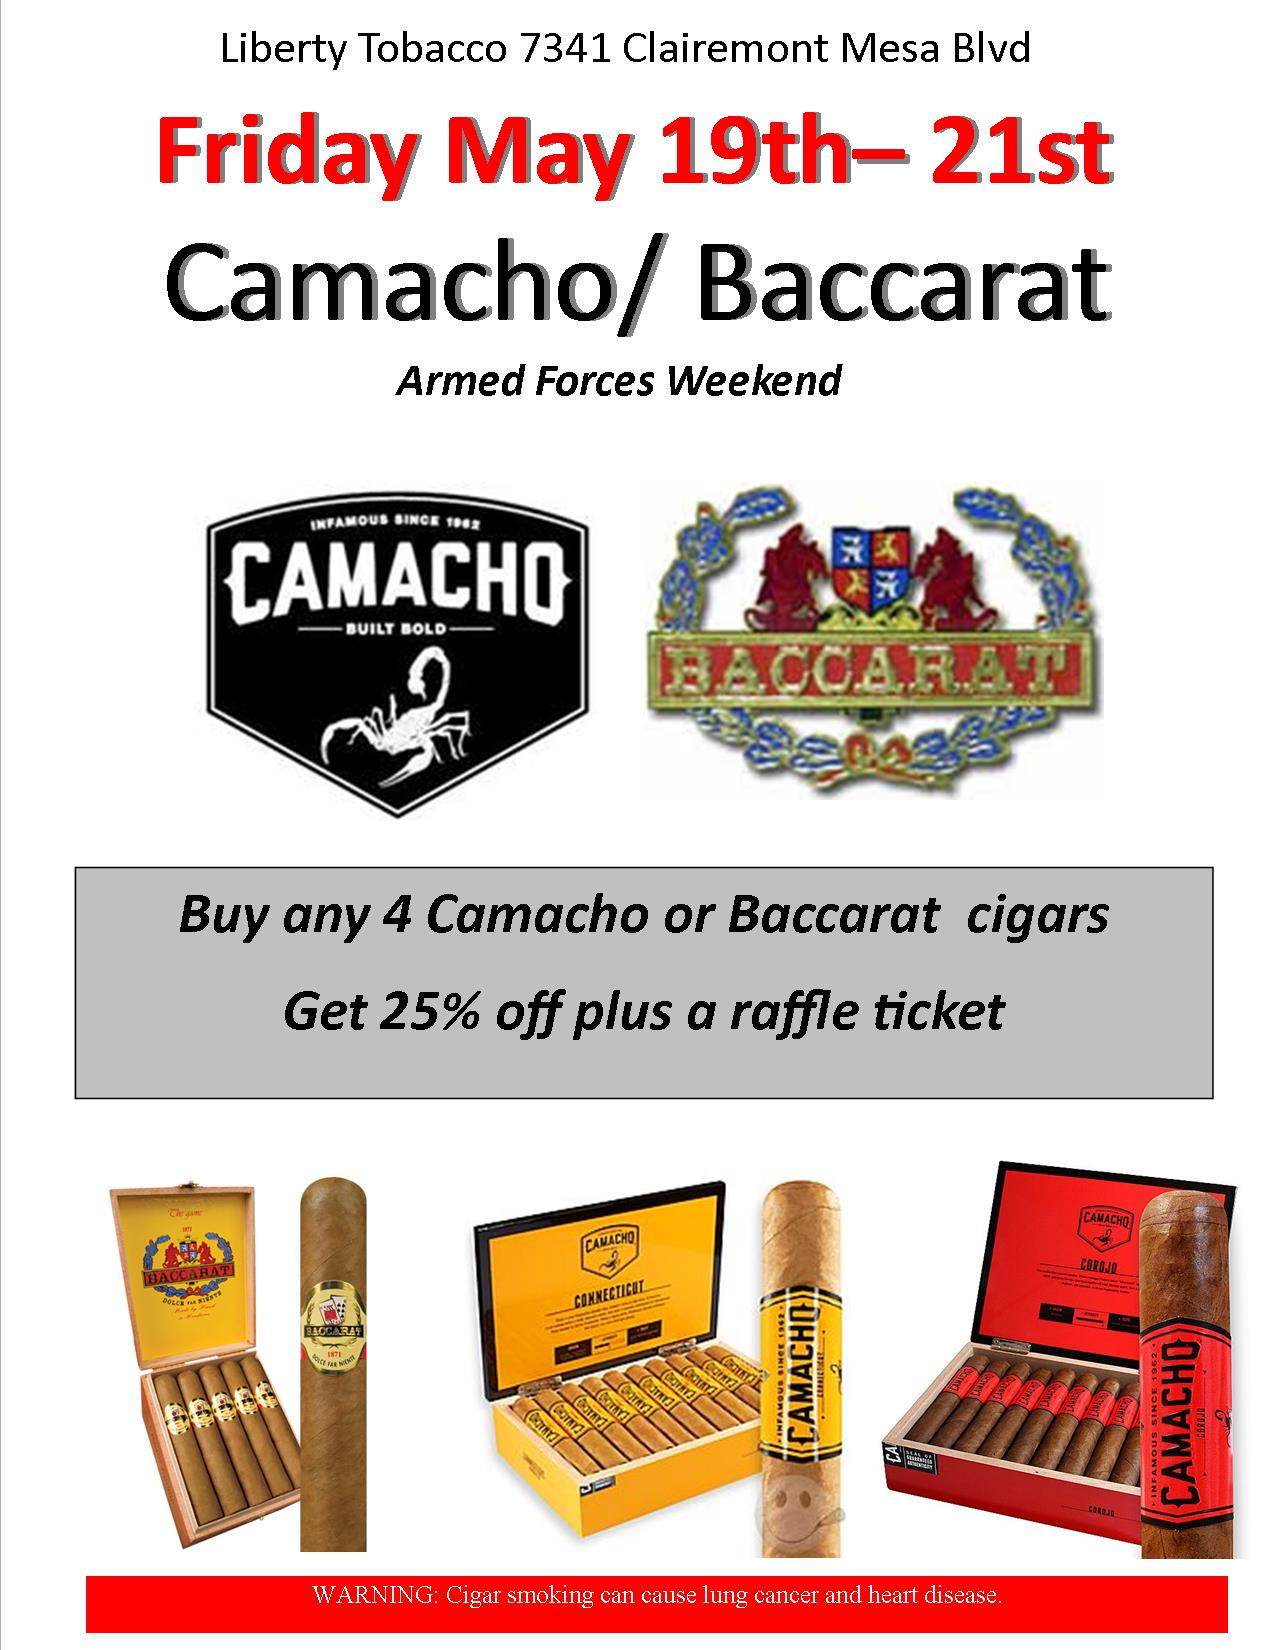 Camcho/Baccarat Event at Liberty Tobacco Kearny Mesa